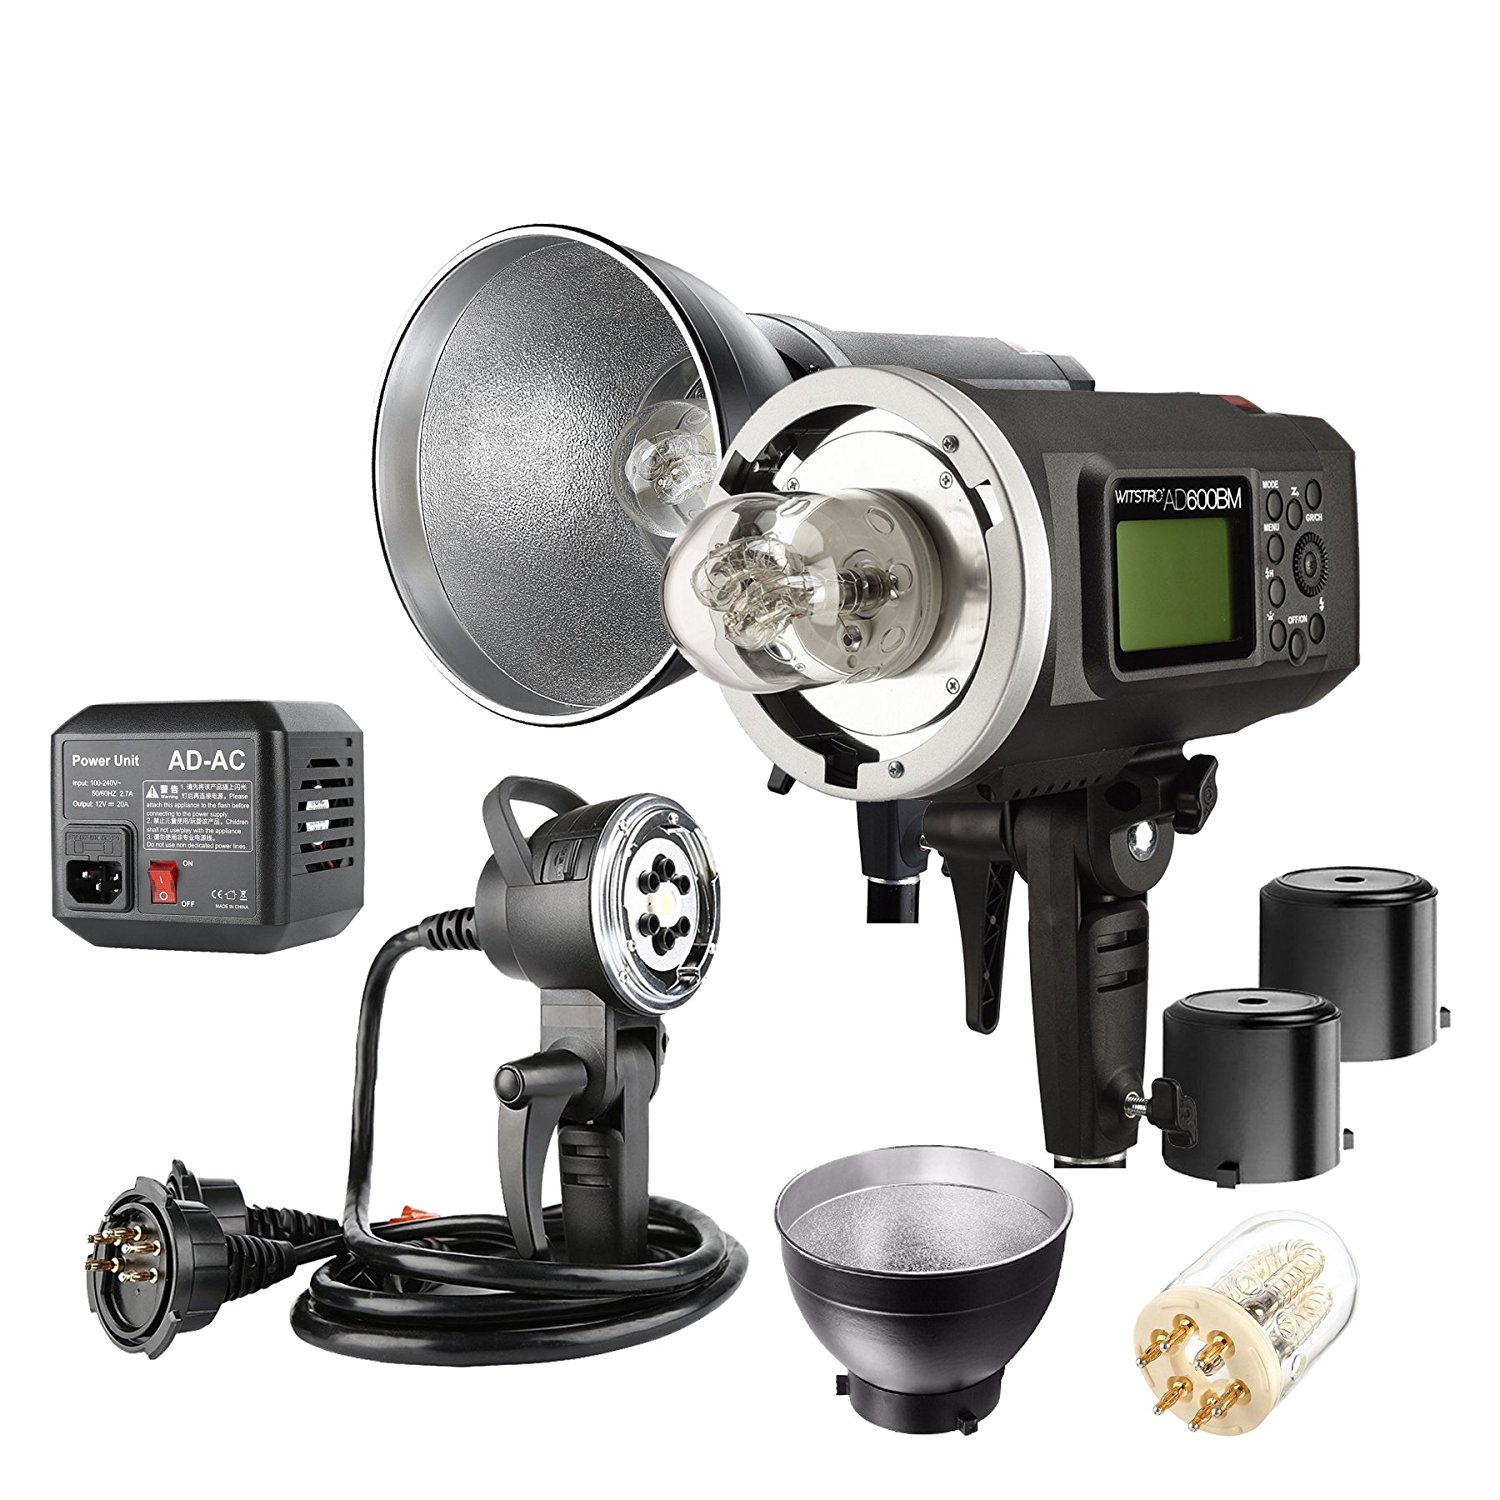 Godox AD600BM 600WS HSS 1/8000s 2.4G Wireless Outside Studio Flash Light 8700mAh Battery with 1200W Portable Flash Head Bowens Mount and Bare Bulb Flash Tube ,AC Wall Adapter